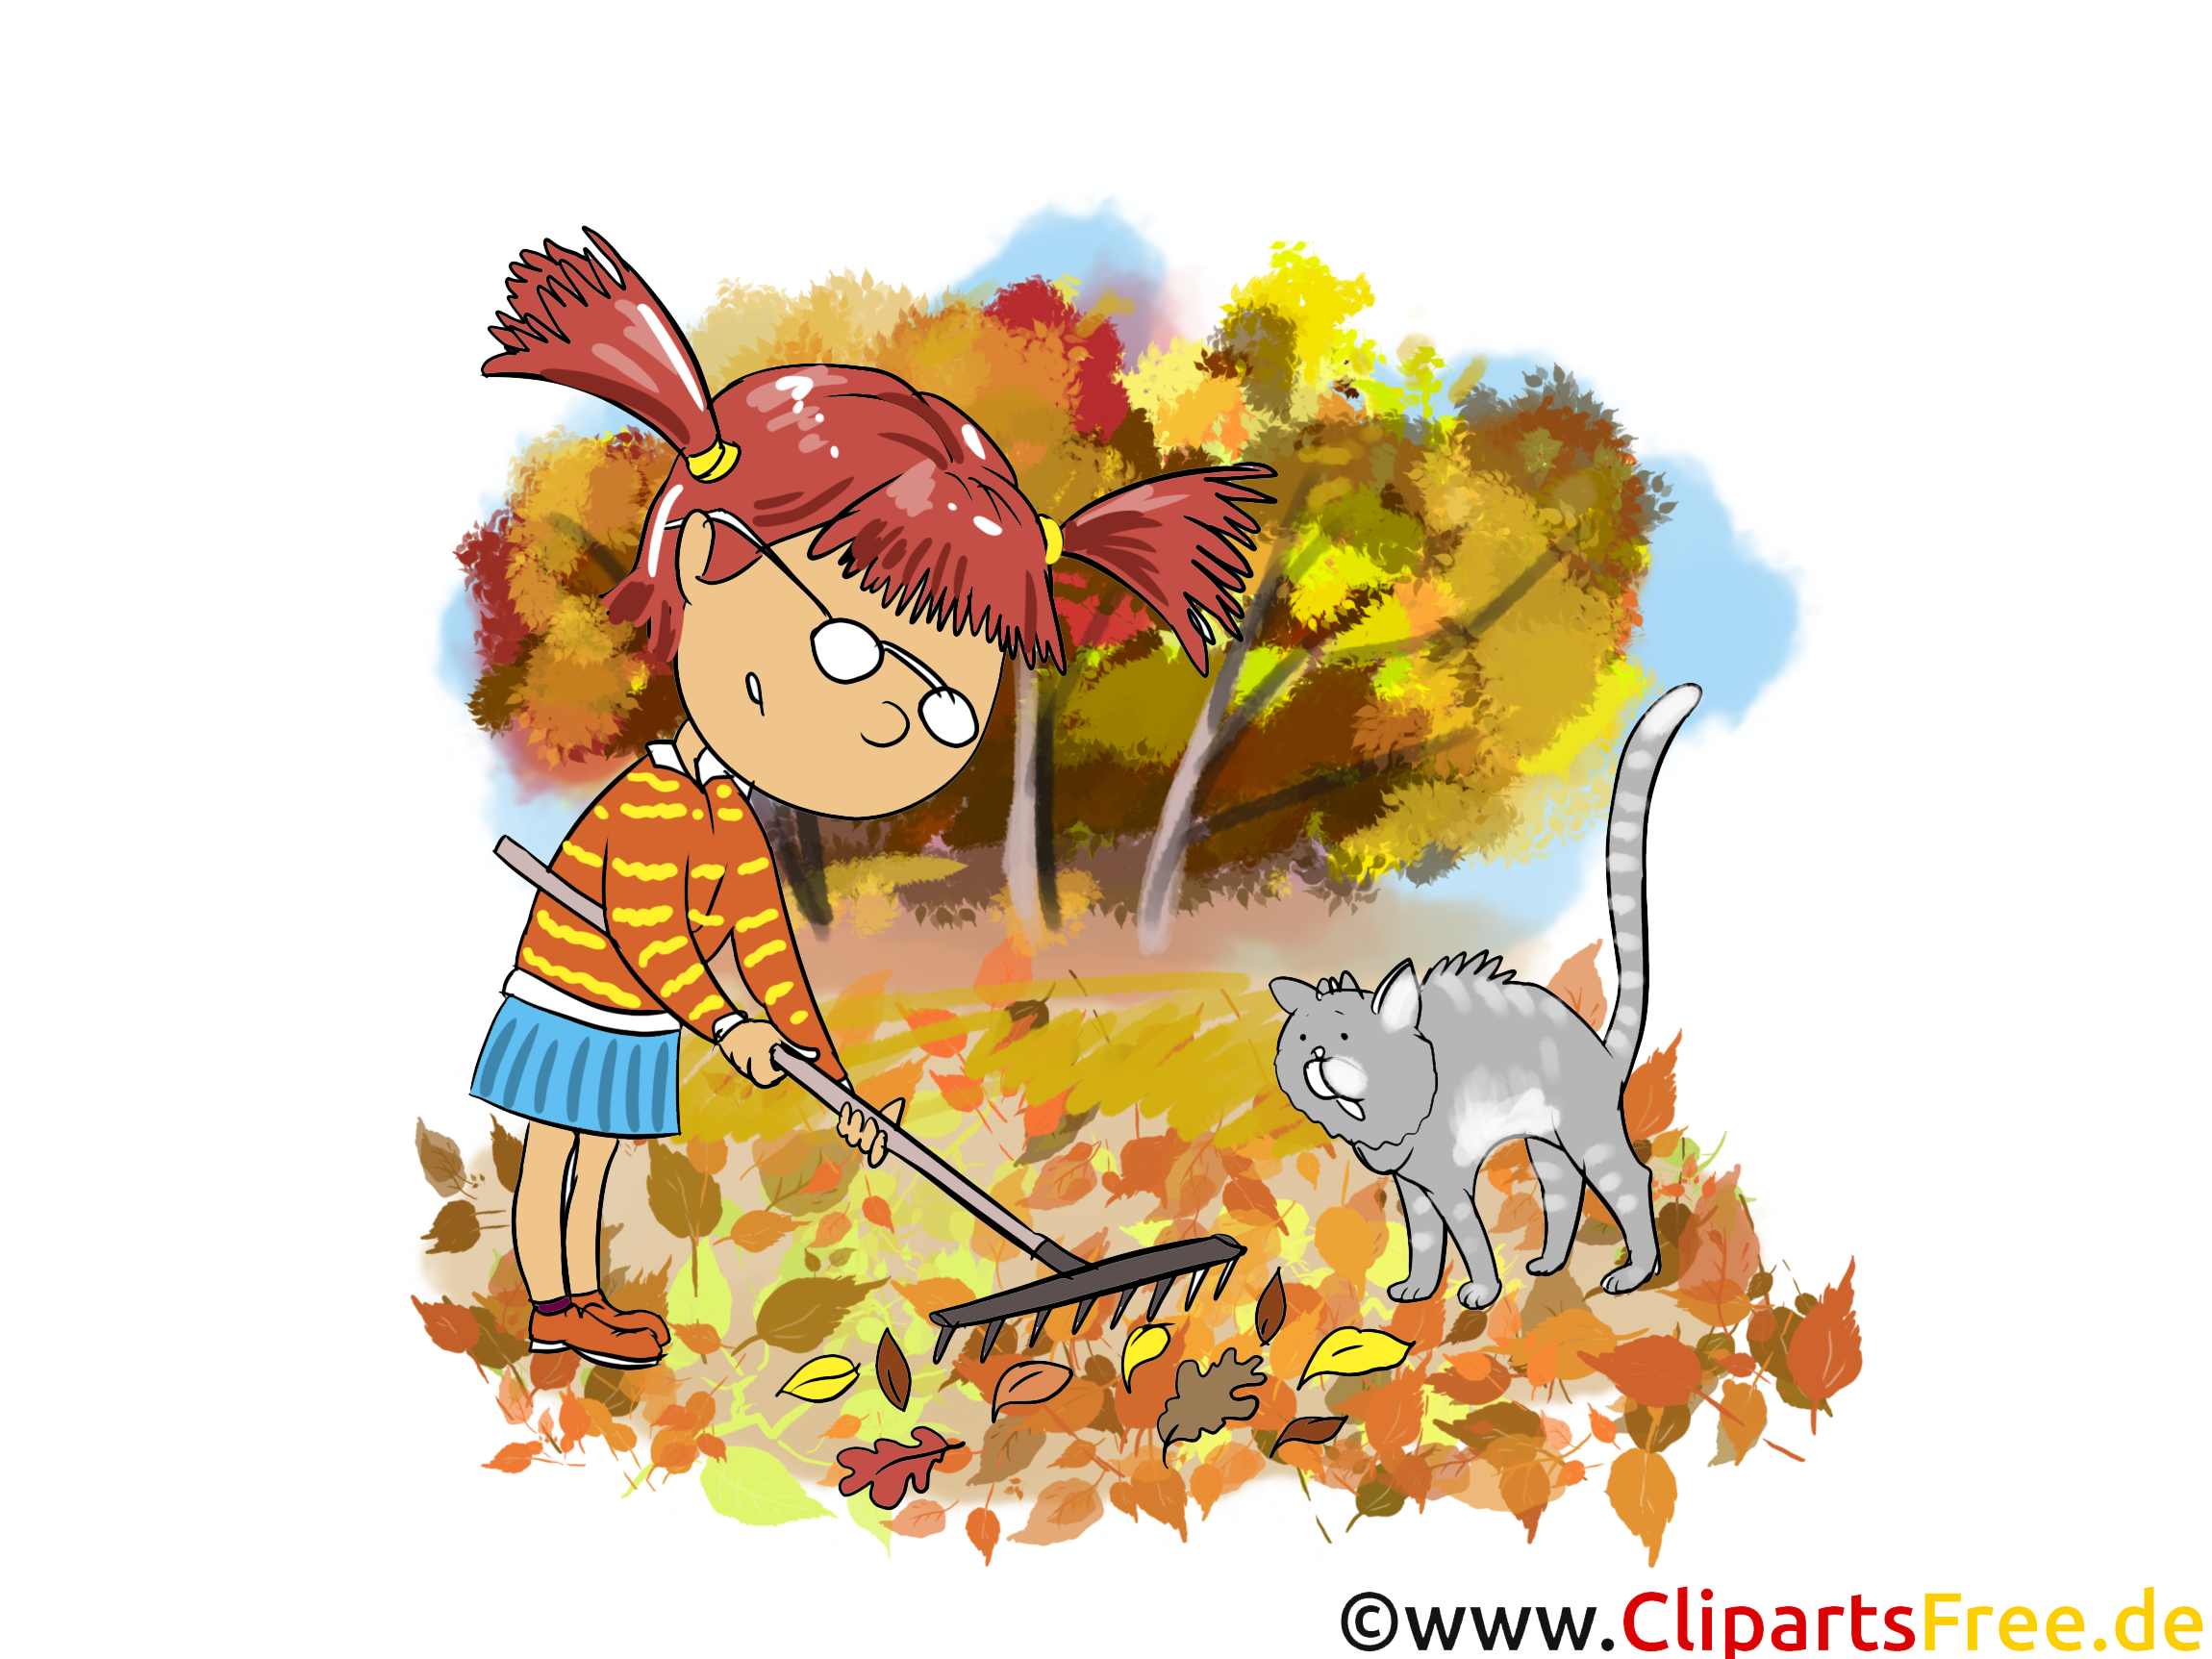 r u00e2teau feuilles illustration gratuite automne clipart automne dessin  picture  image thanksgiving clipart at the beach thanksgiving clip art free images